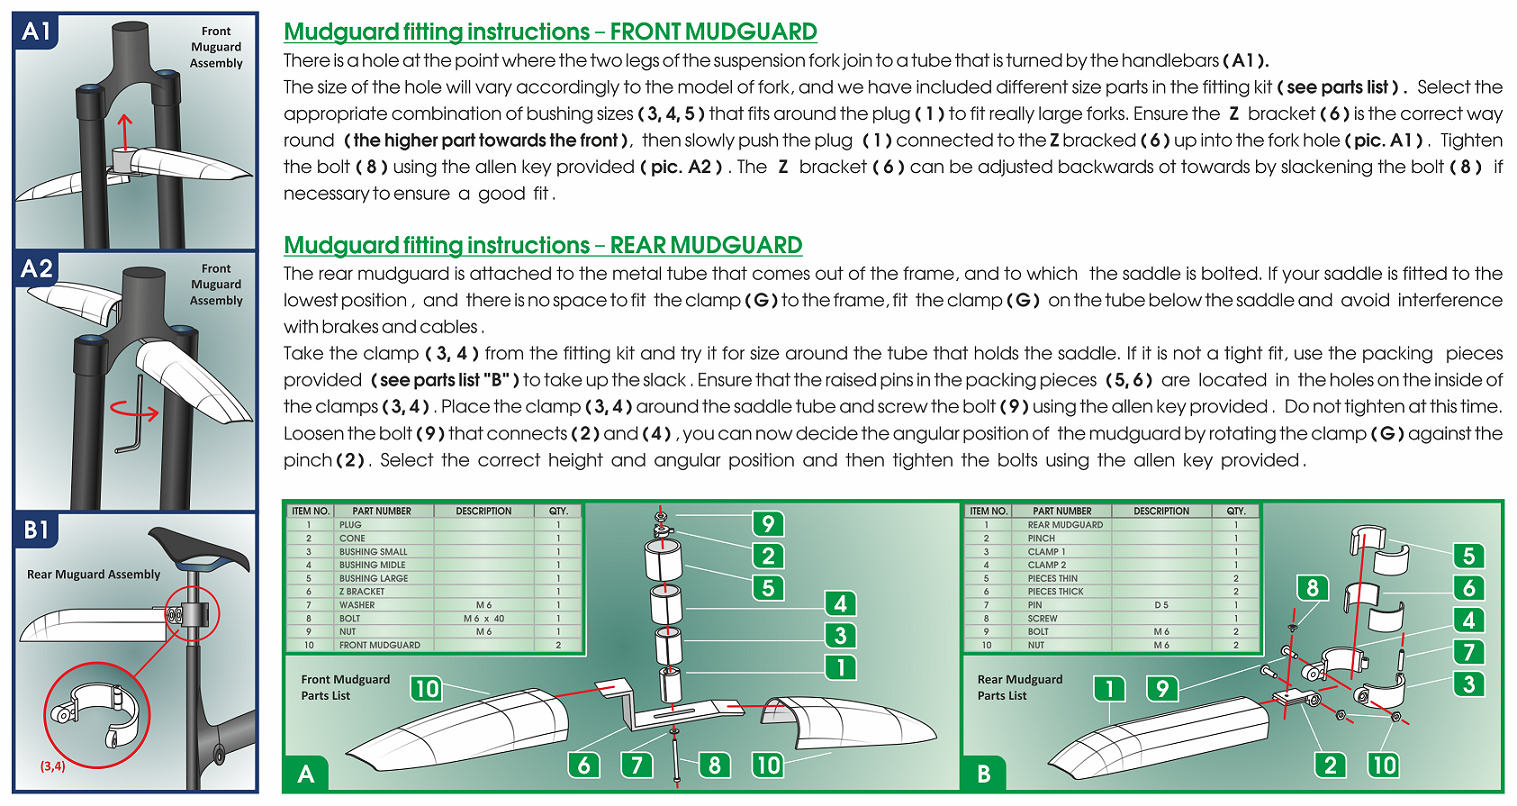 Mudguard Fitting Instructions